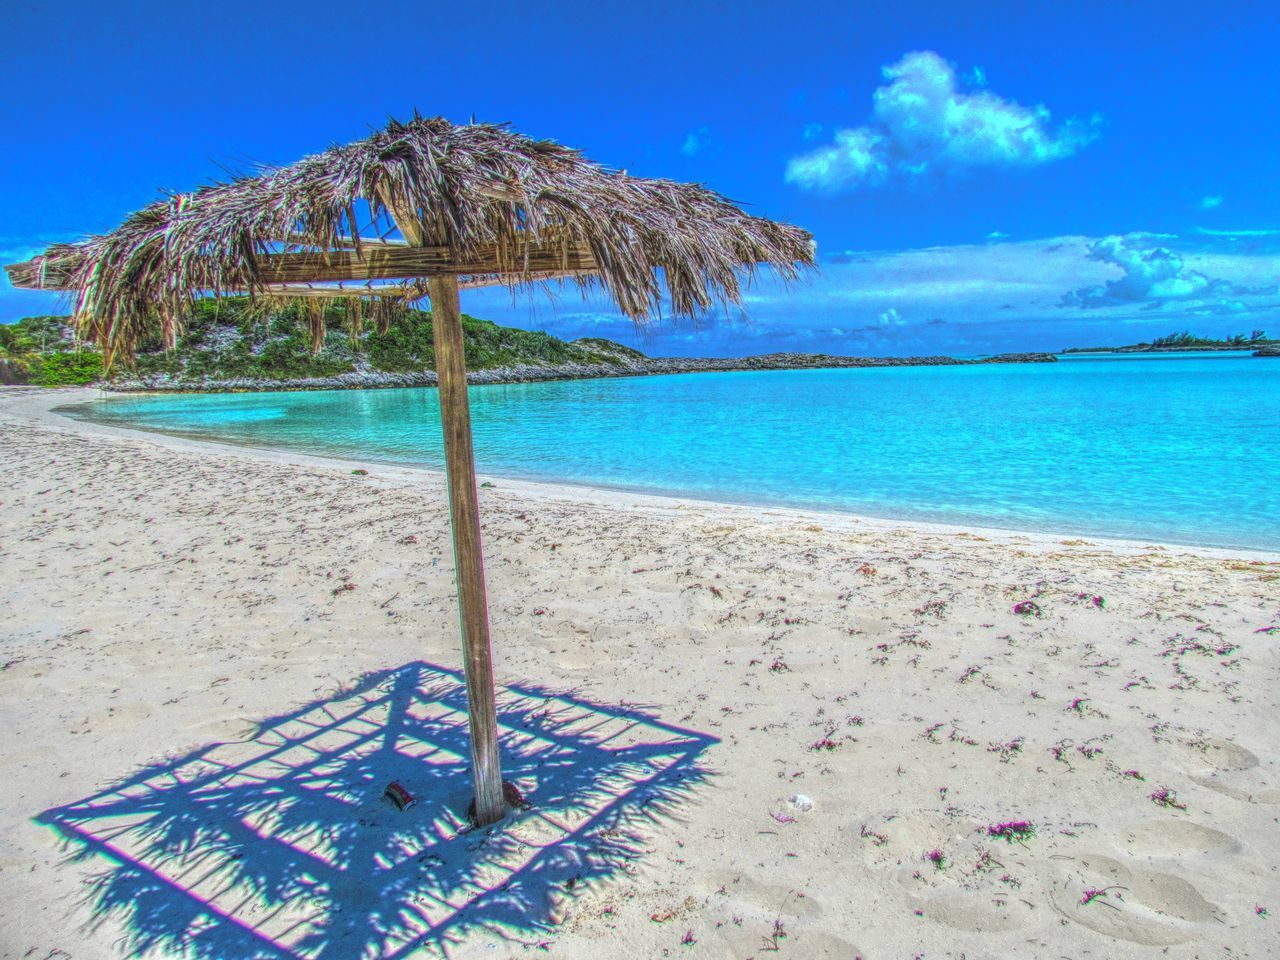 beach, sea, sand, thatched roof, tranquility, tranquil scene, blue, beauty in nature, water, nature, idyllic, scenics, horizon over water, sky, day, summer, outdoors, vacations, no people, shelter, clear sky